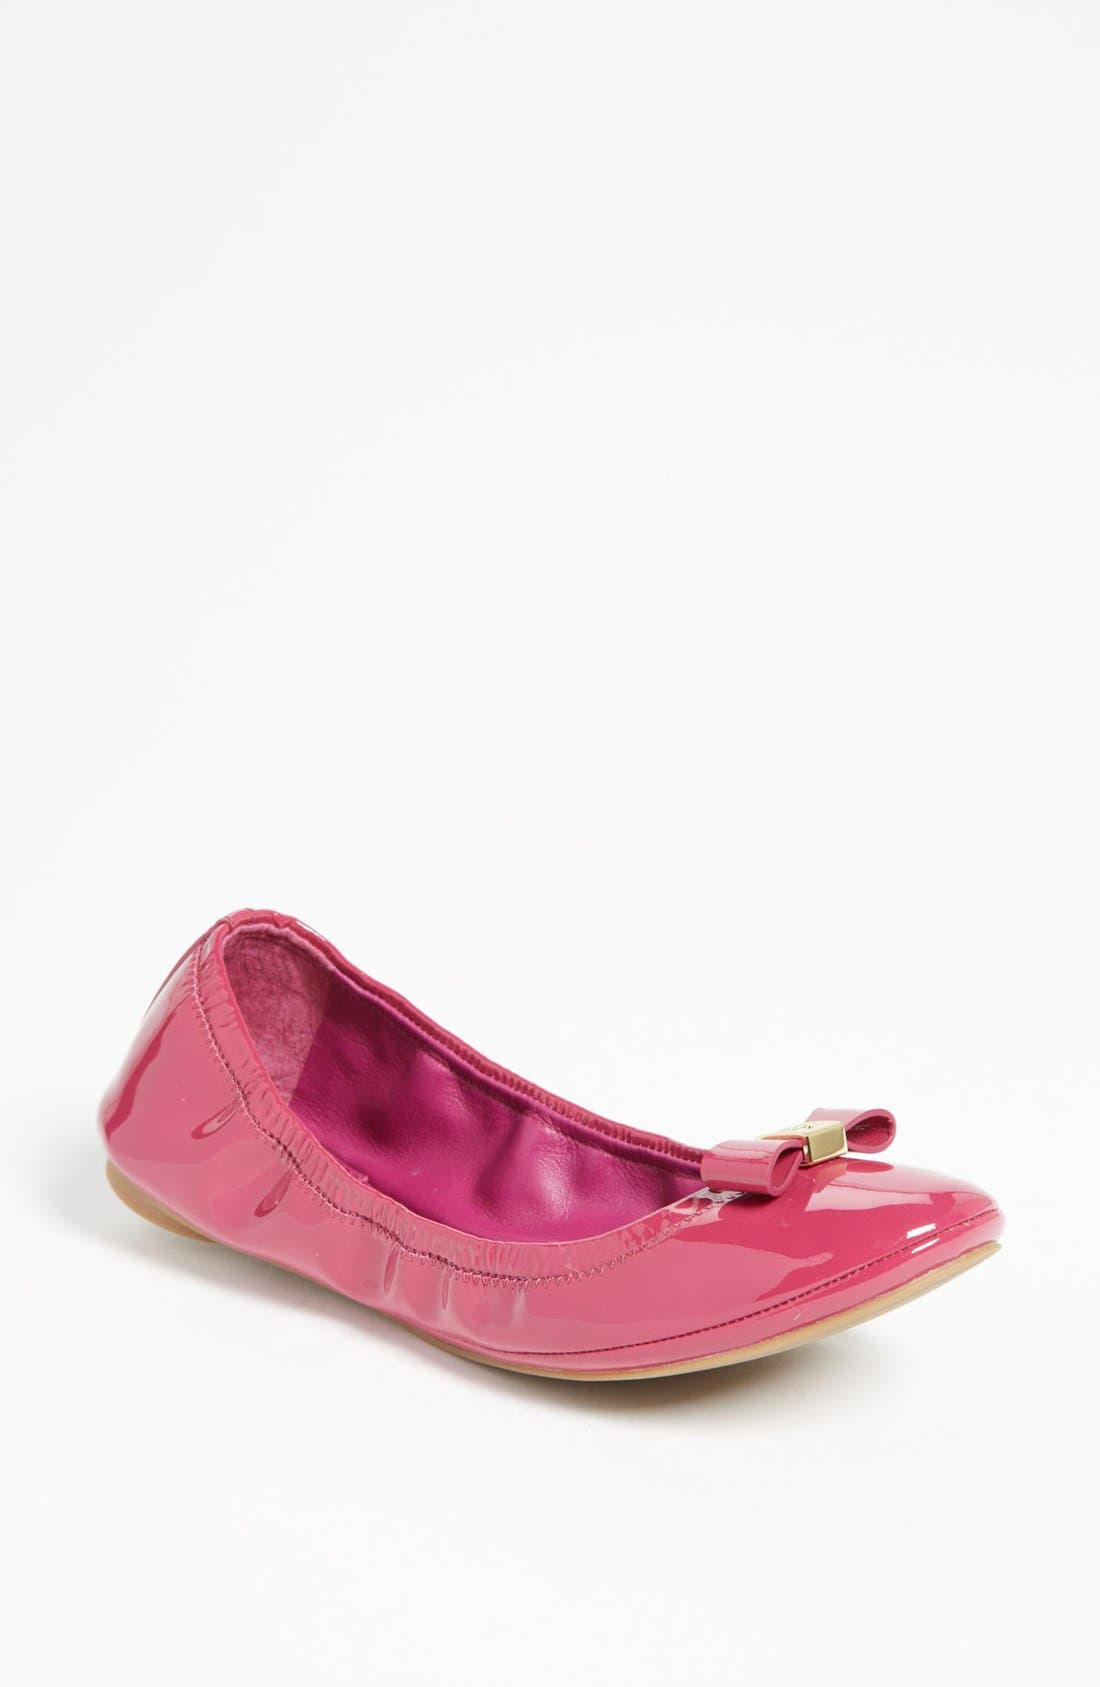 Alternate Image 1 Selected - Tory Burch 'Eddie' Flat